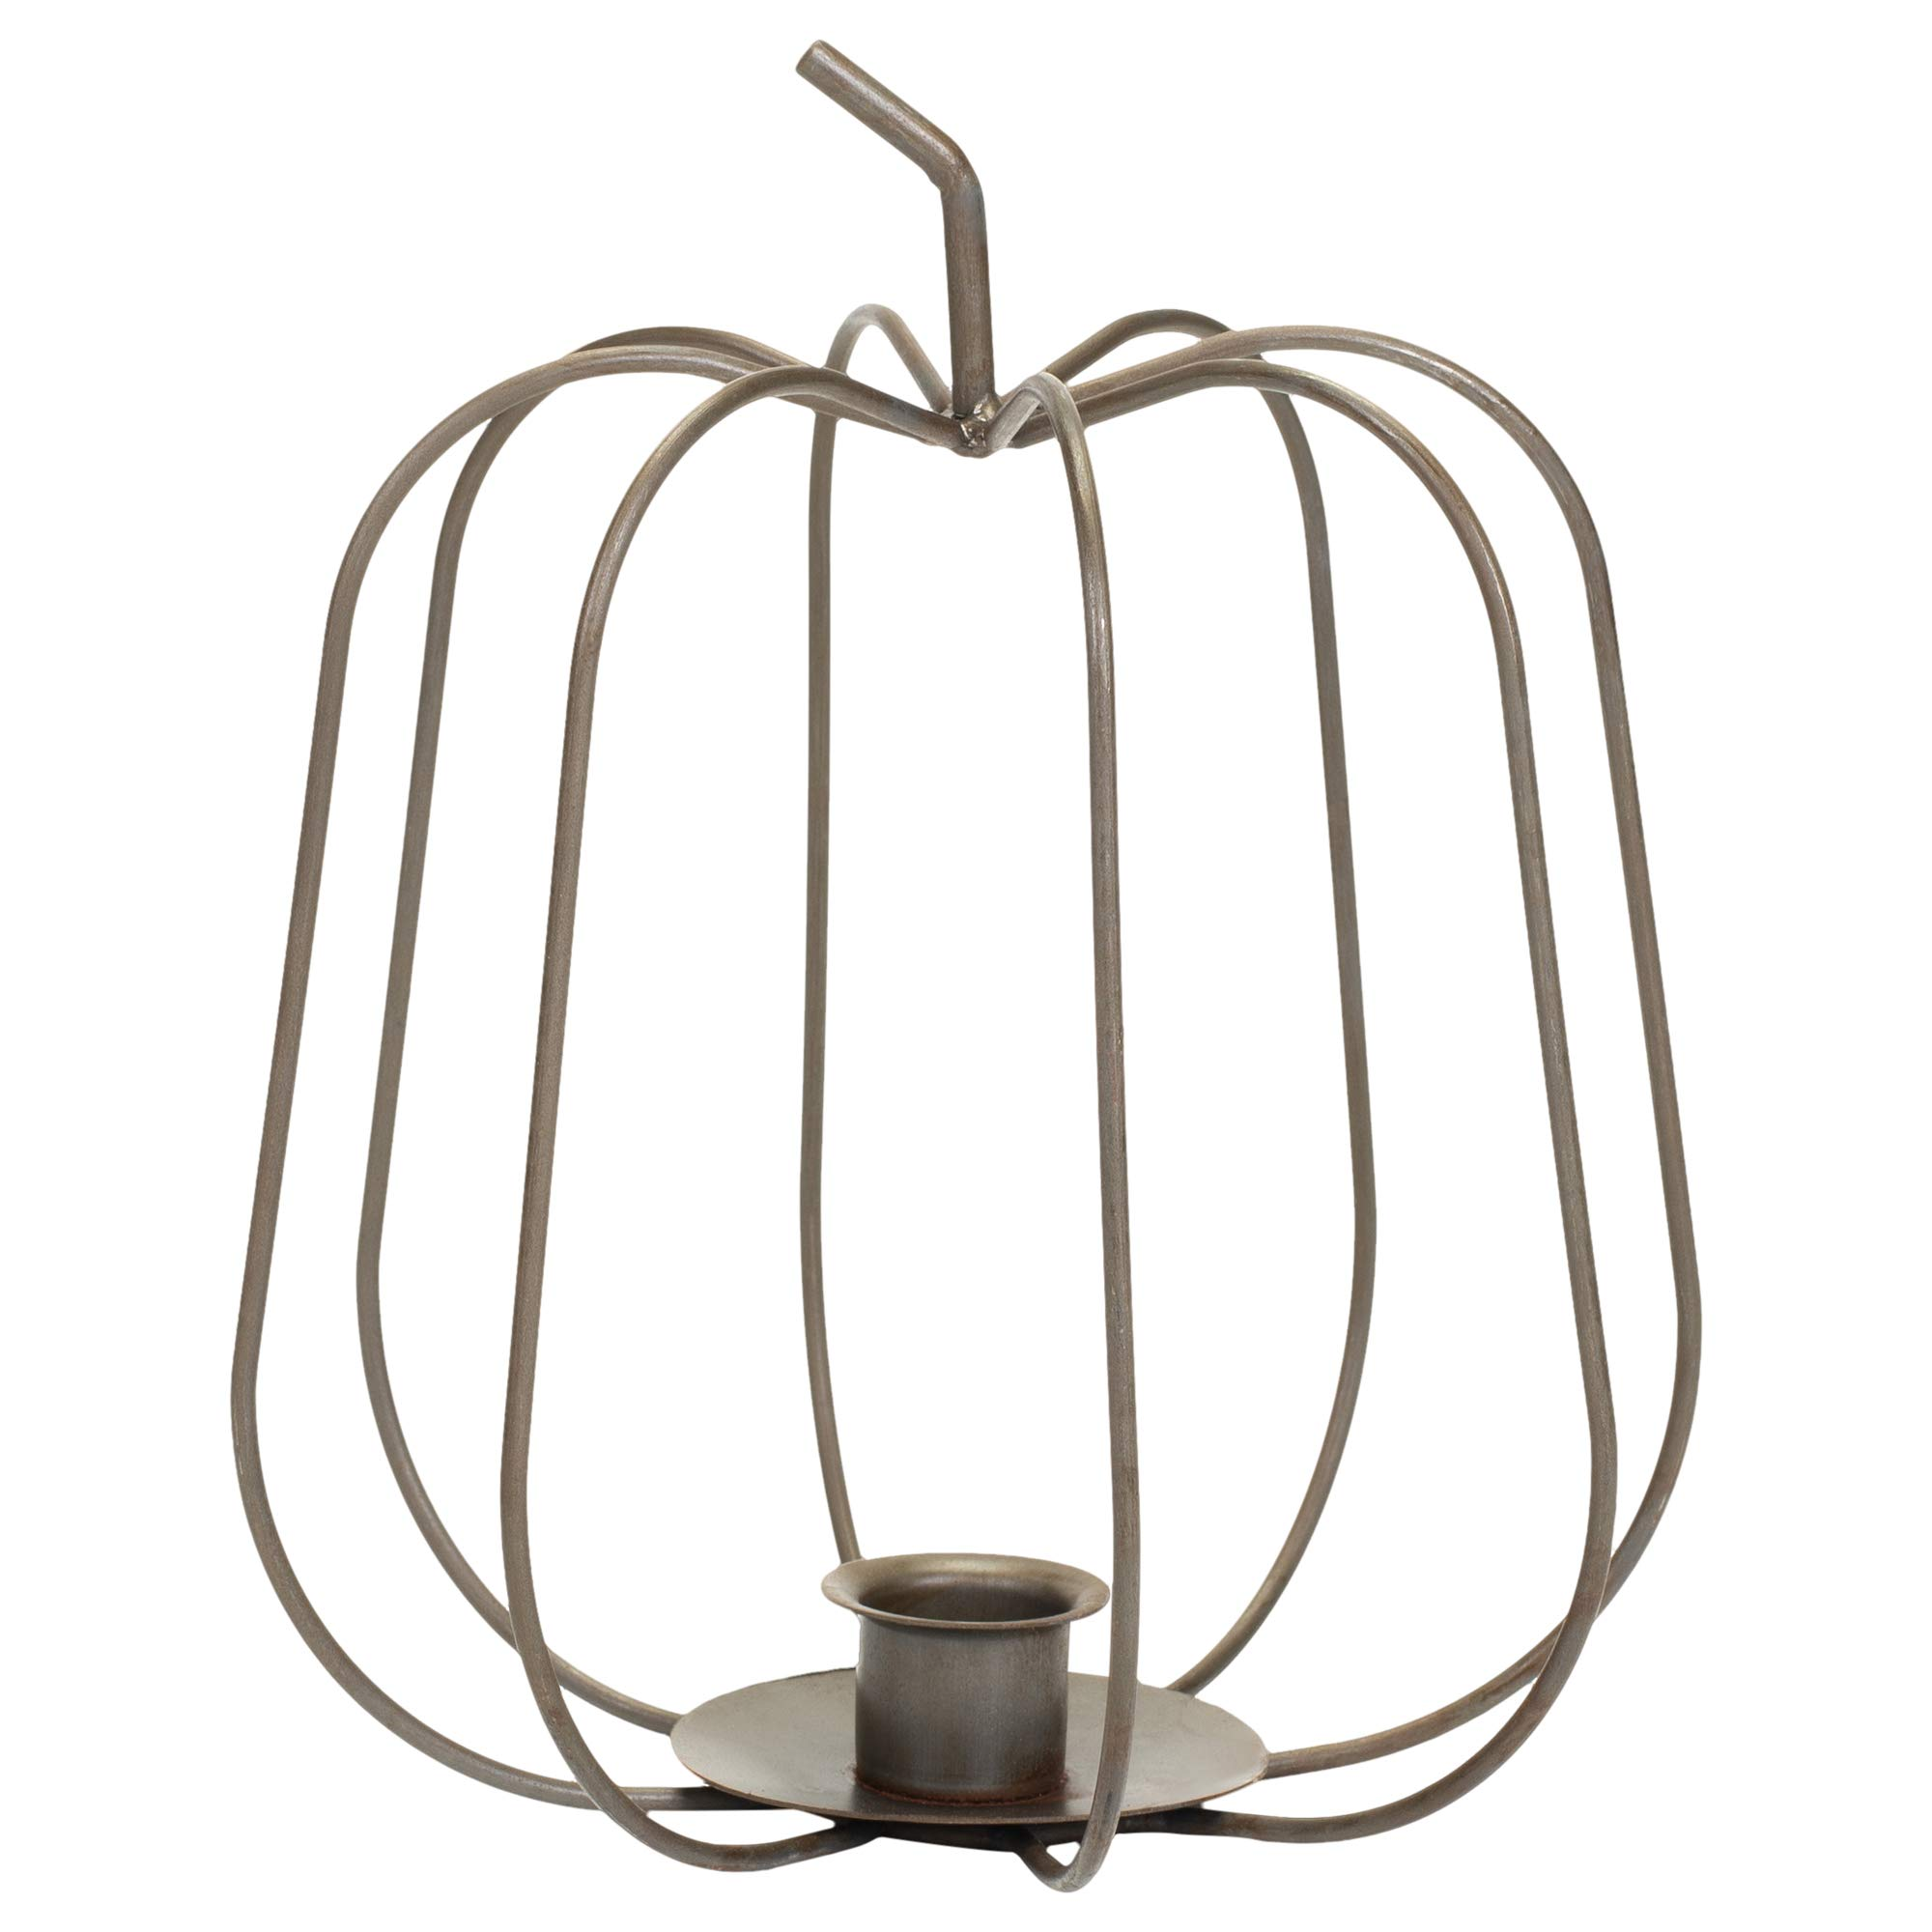 Pumpkin With Stem Wire Rustic Gray 8 x 6 Metal Harvest Taper Candle Holder